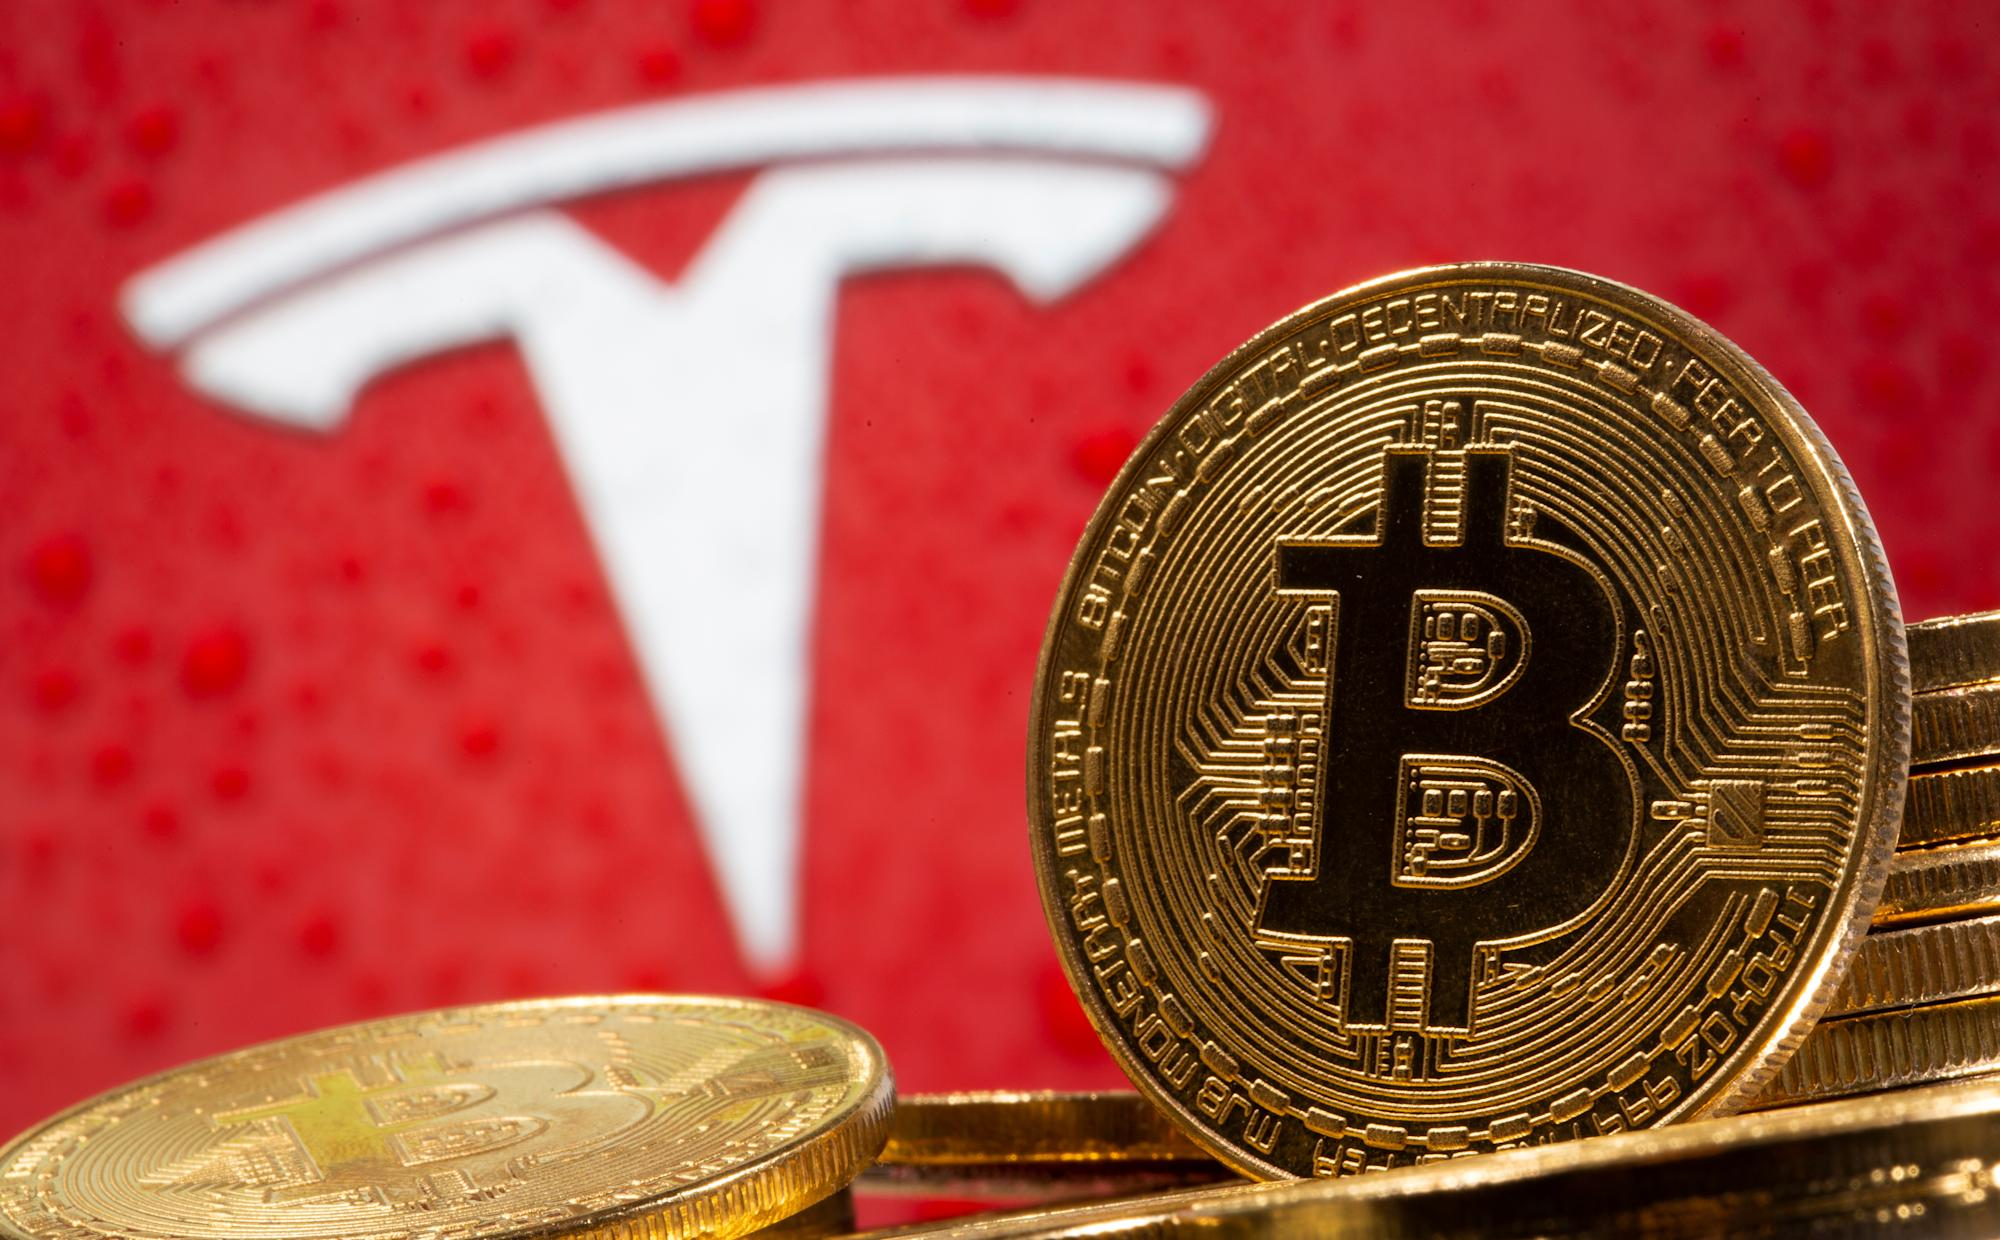 Musk says Tesla will likely accept bitcoin again in climate backtrack - Yahoo Finance